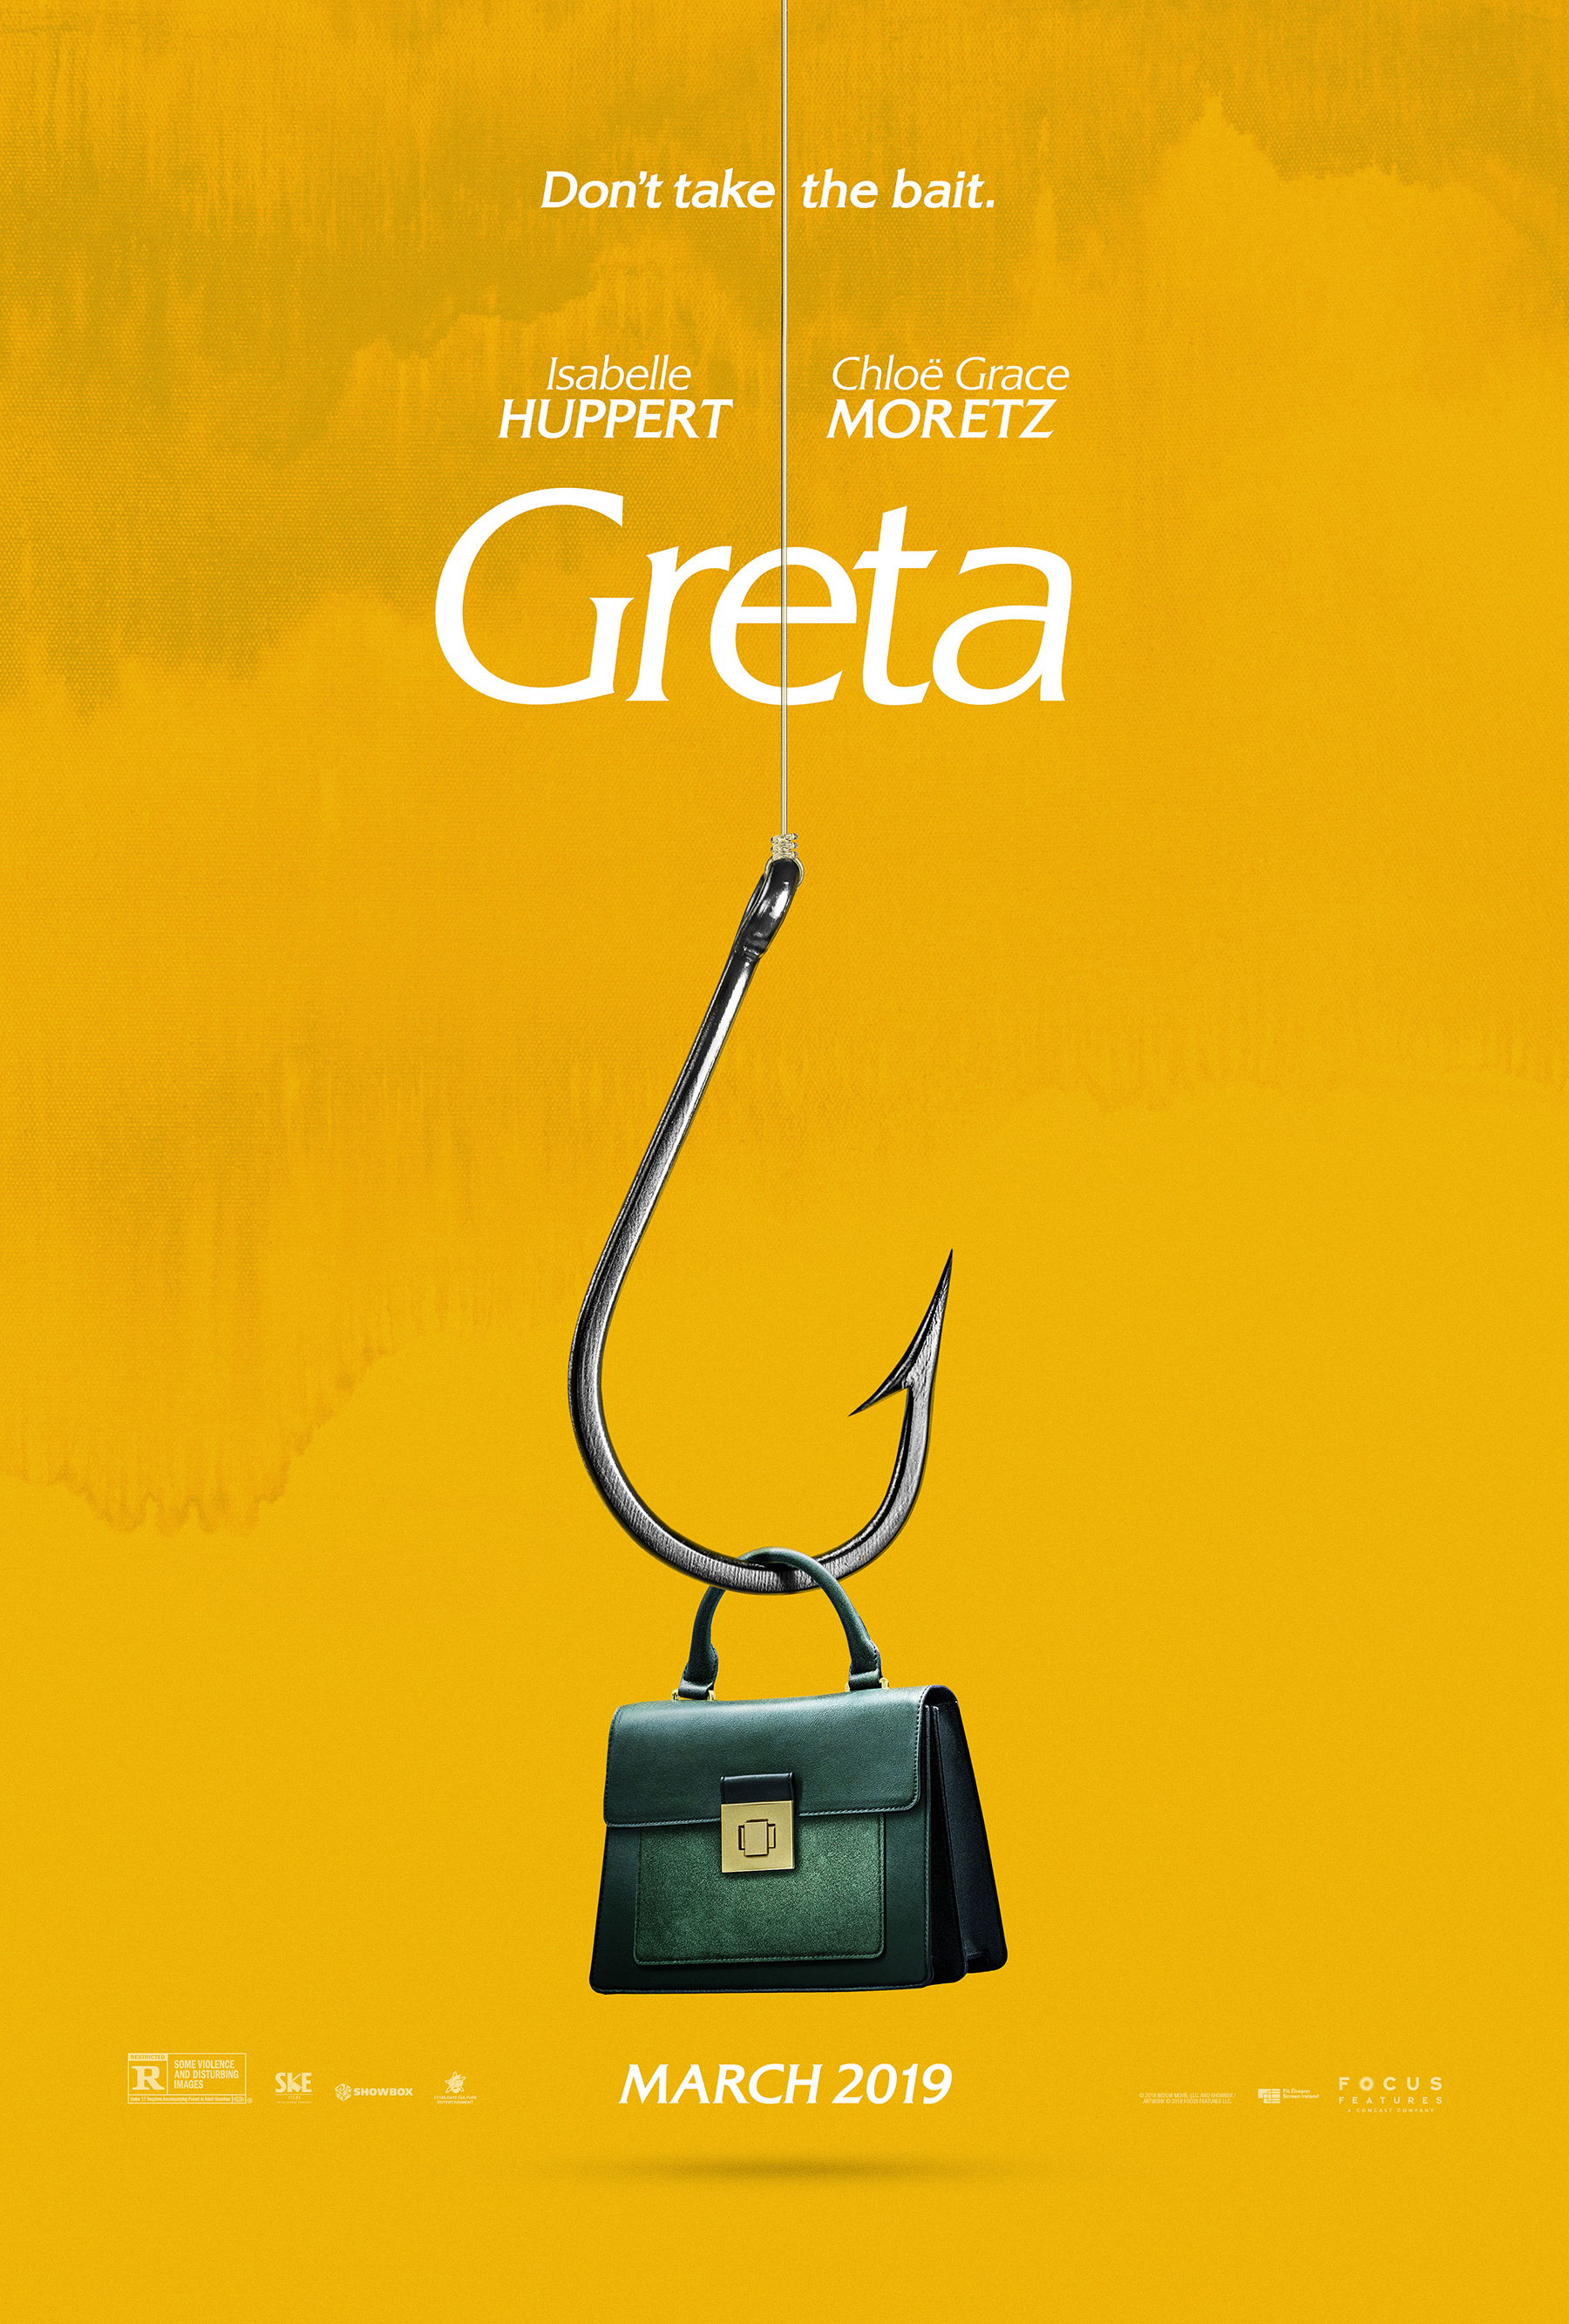 Chloë Grace Moretz, Isabelle Huppert have a toxic friendship in sinister <em>Greta</em> trailer 12